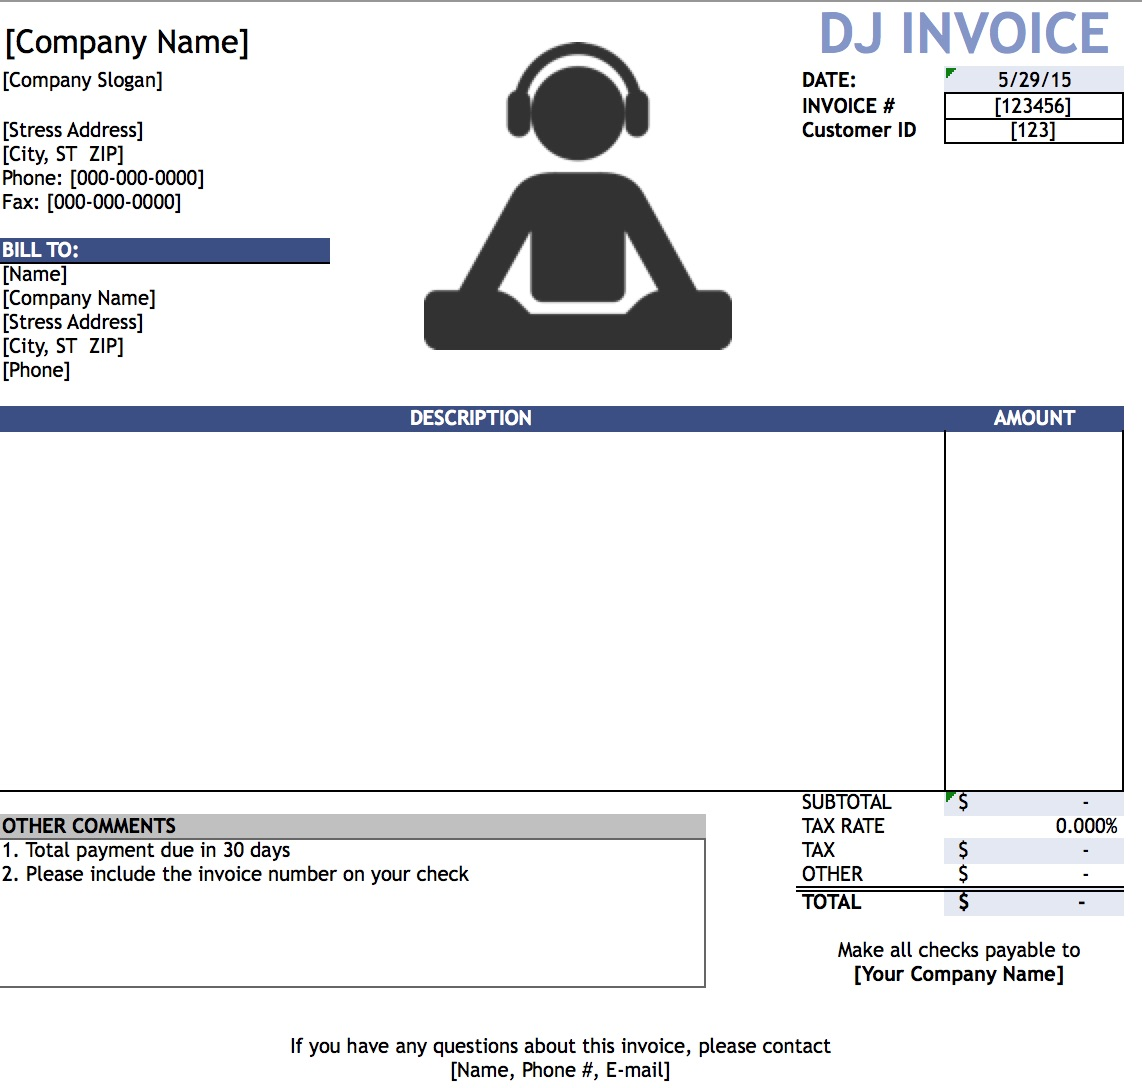 Free DJ Disc Jockey Invoice Template Excel PDF Word Doc - Microsoft word templates invoice for service business